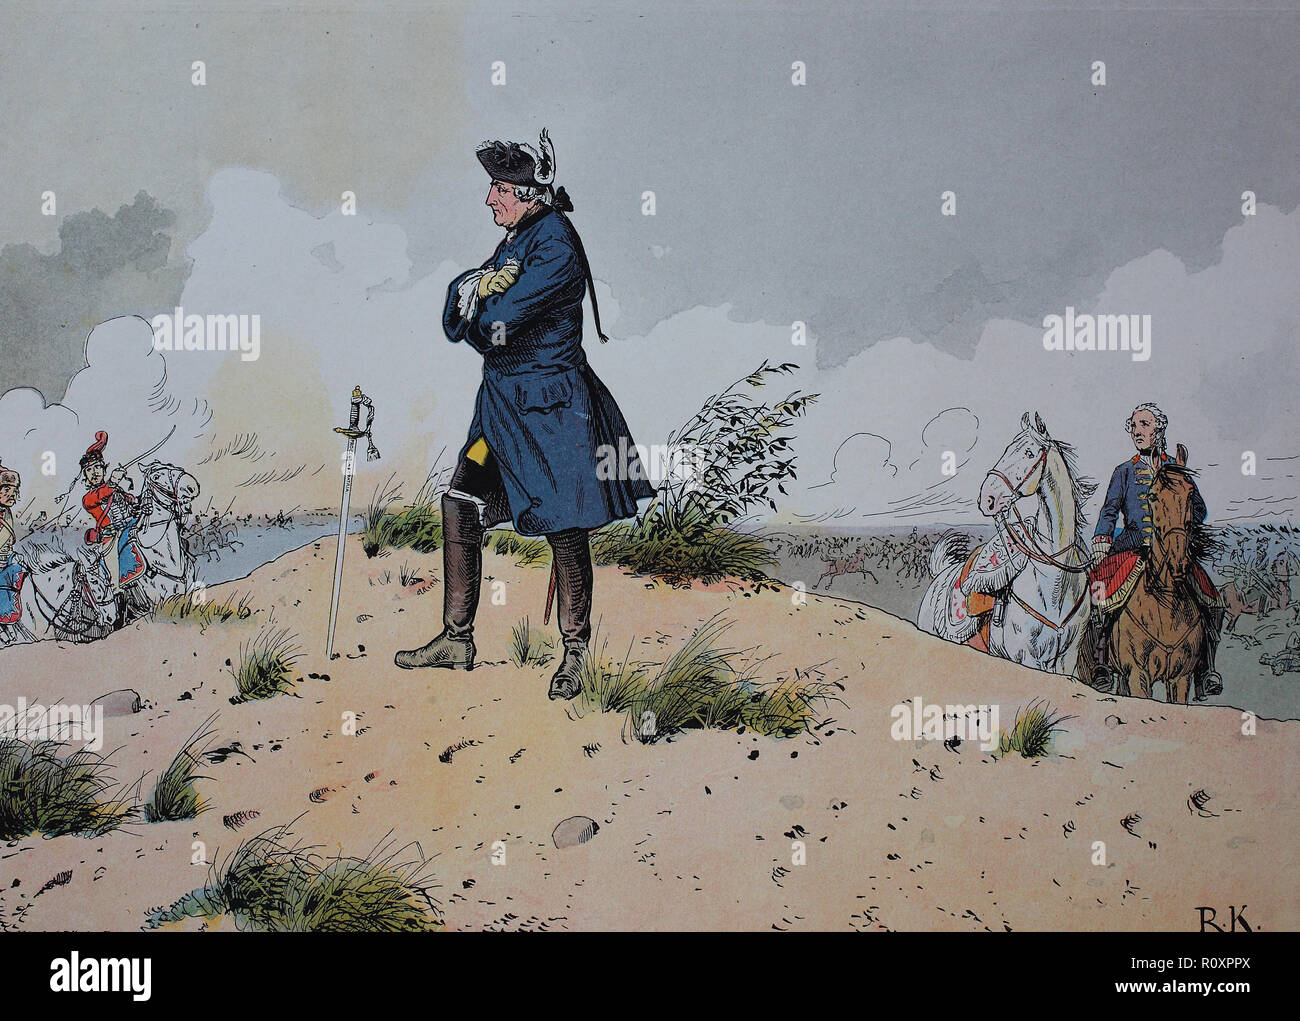 Digital improved reproduction, King Frederick the Great, Frederick II., Friedrich der Große, Friedrich II. 1712 - 1786, Seven Years' War, global conflict fought between 1756 and 1763, Battle of Kunersdorf occurred on 12 August 1759 - Stock Image